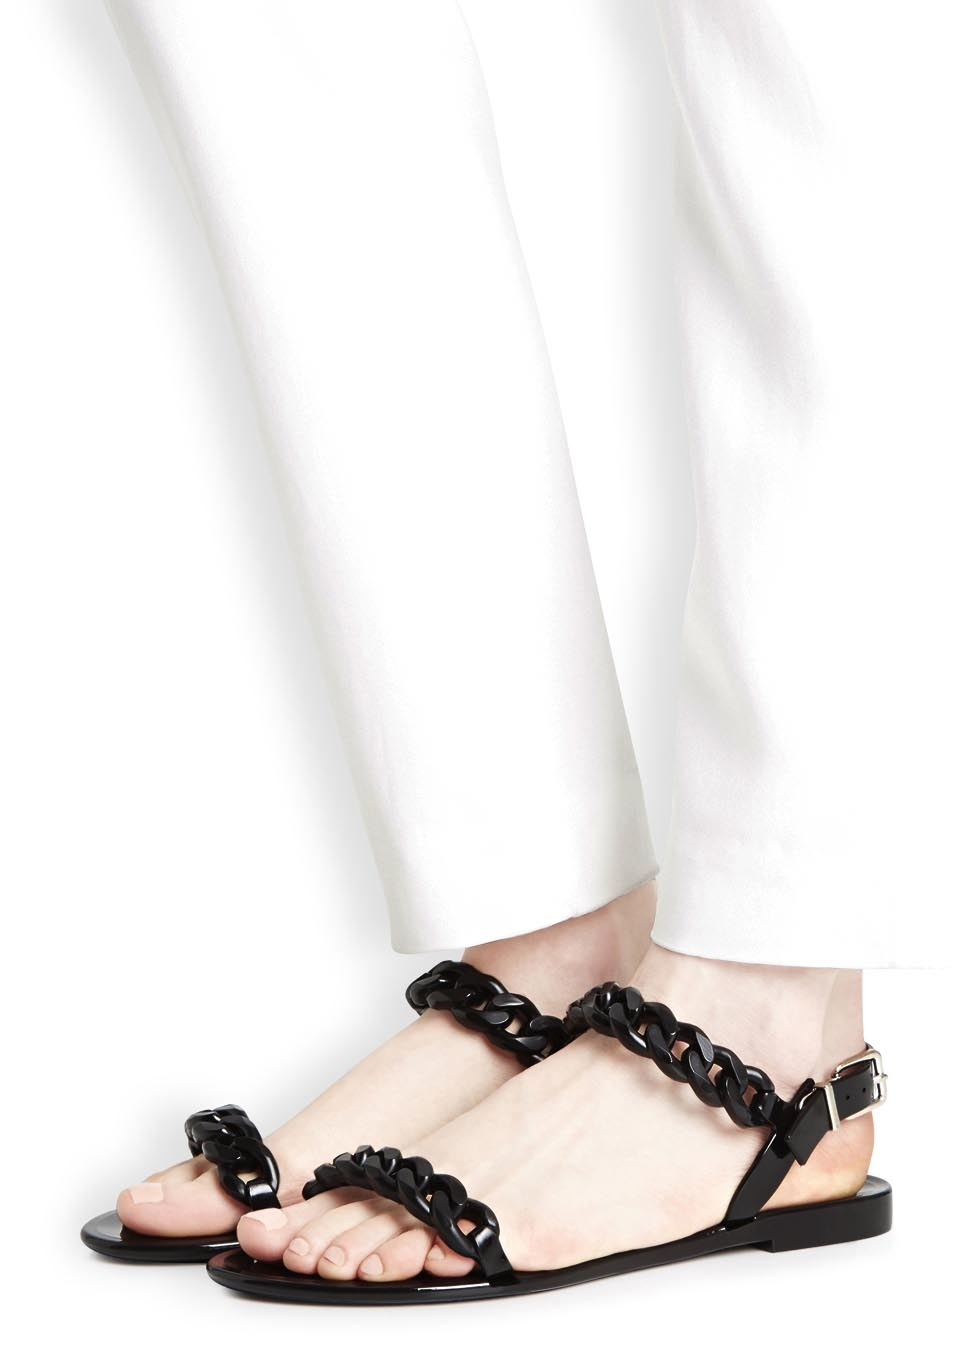 62f3117e0546 Givenchy Black Vinyl Chain Sandals in Black - Lyst